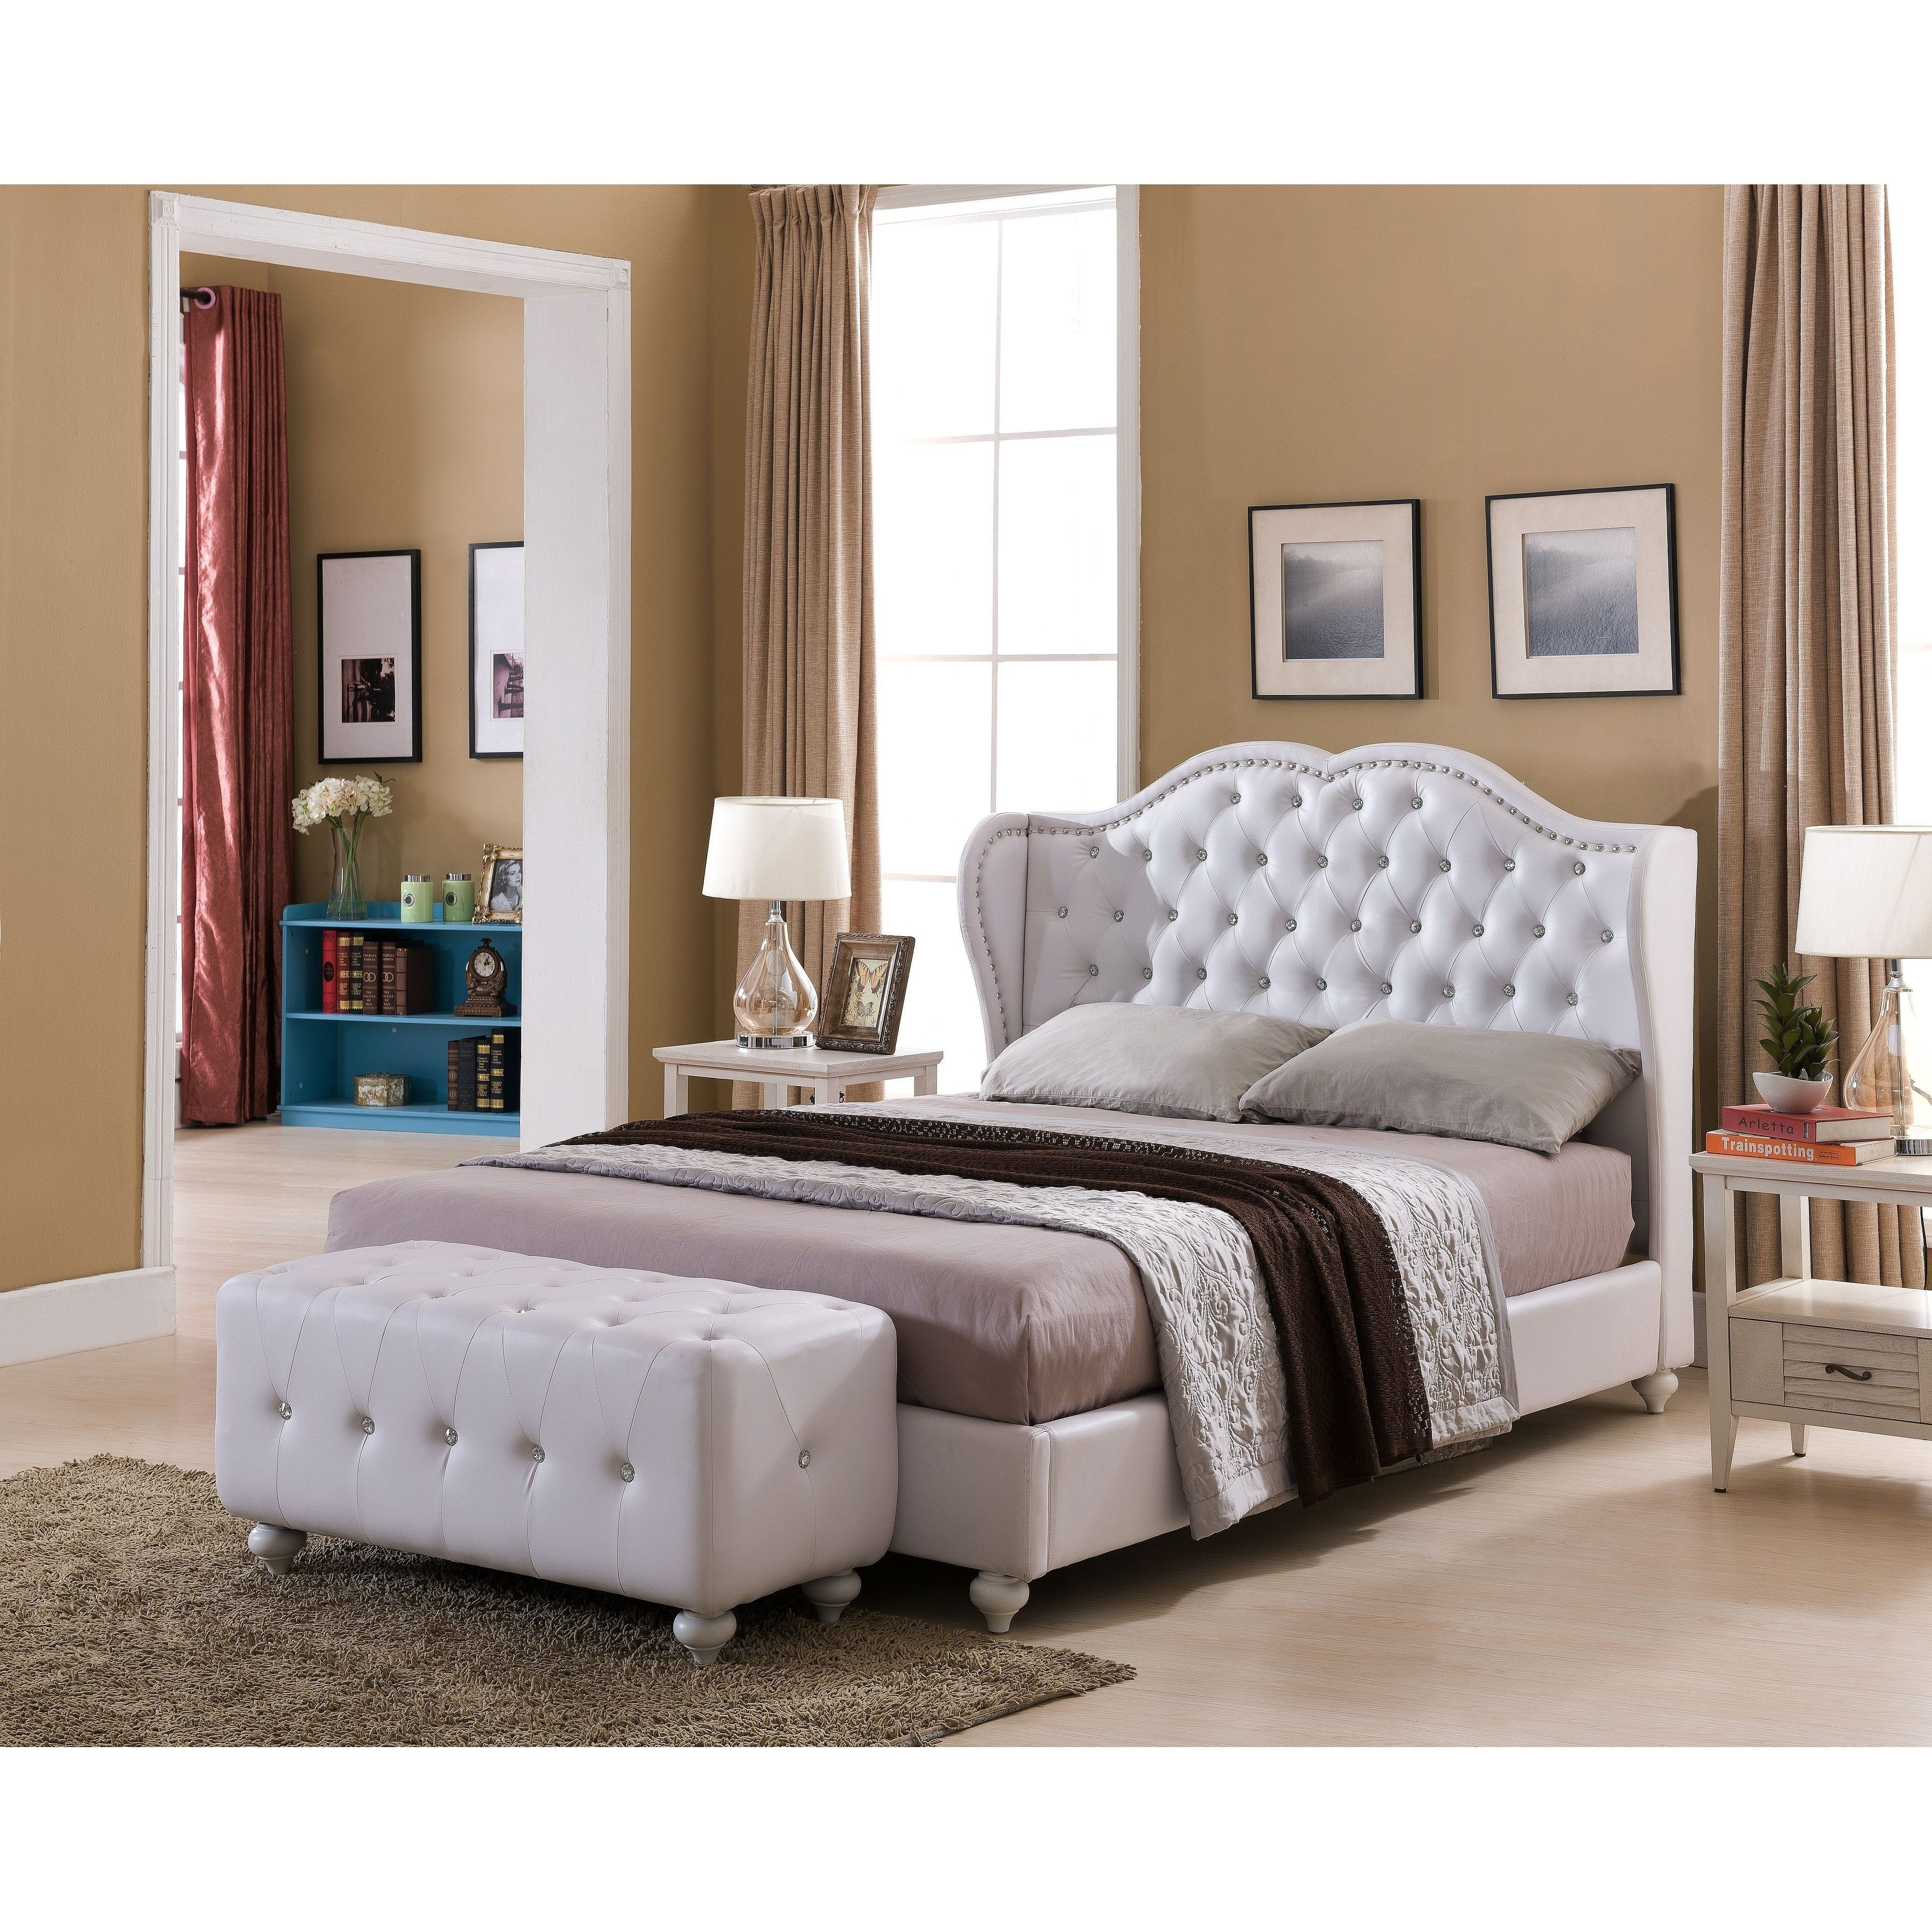 White Leather Upholstered Solid Wood Bed Frame (White